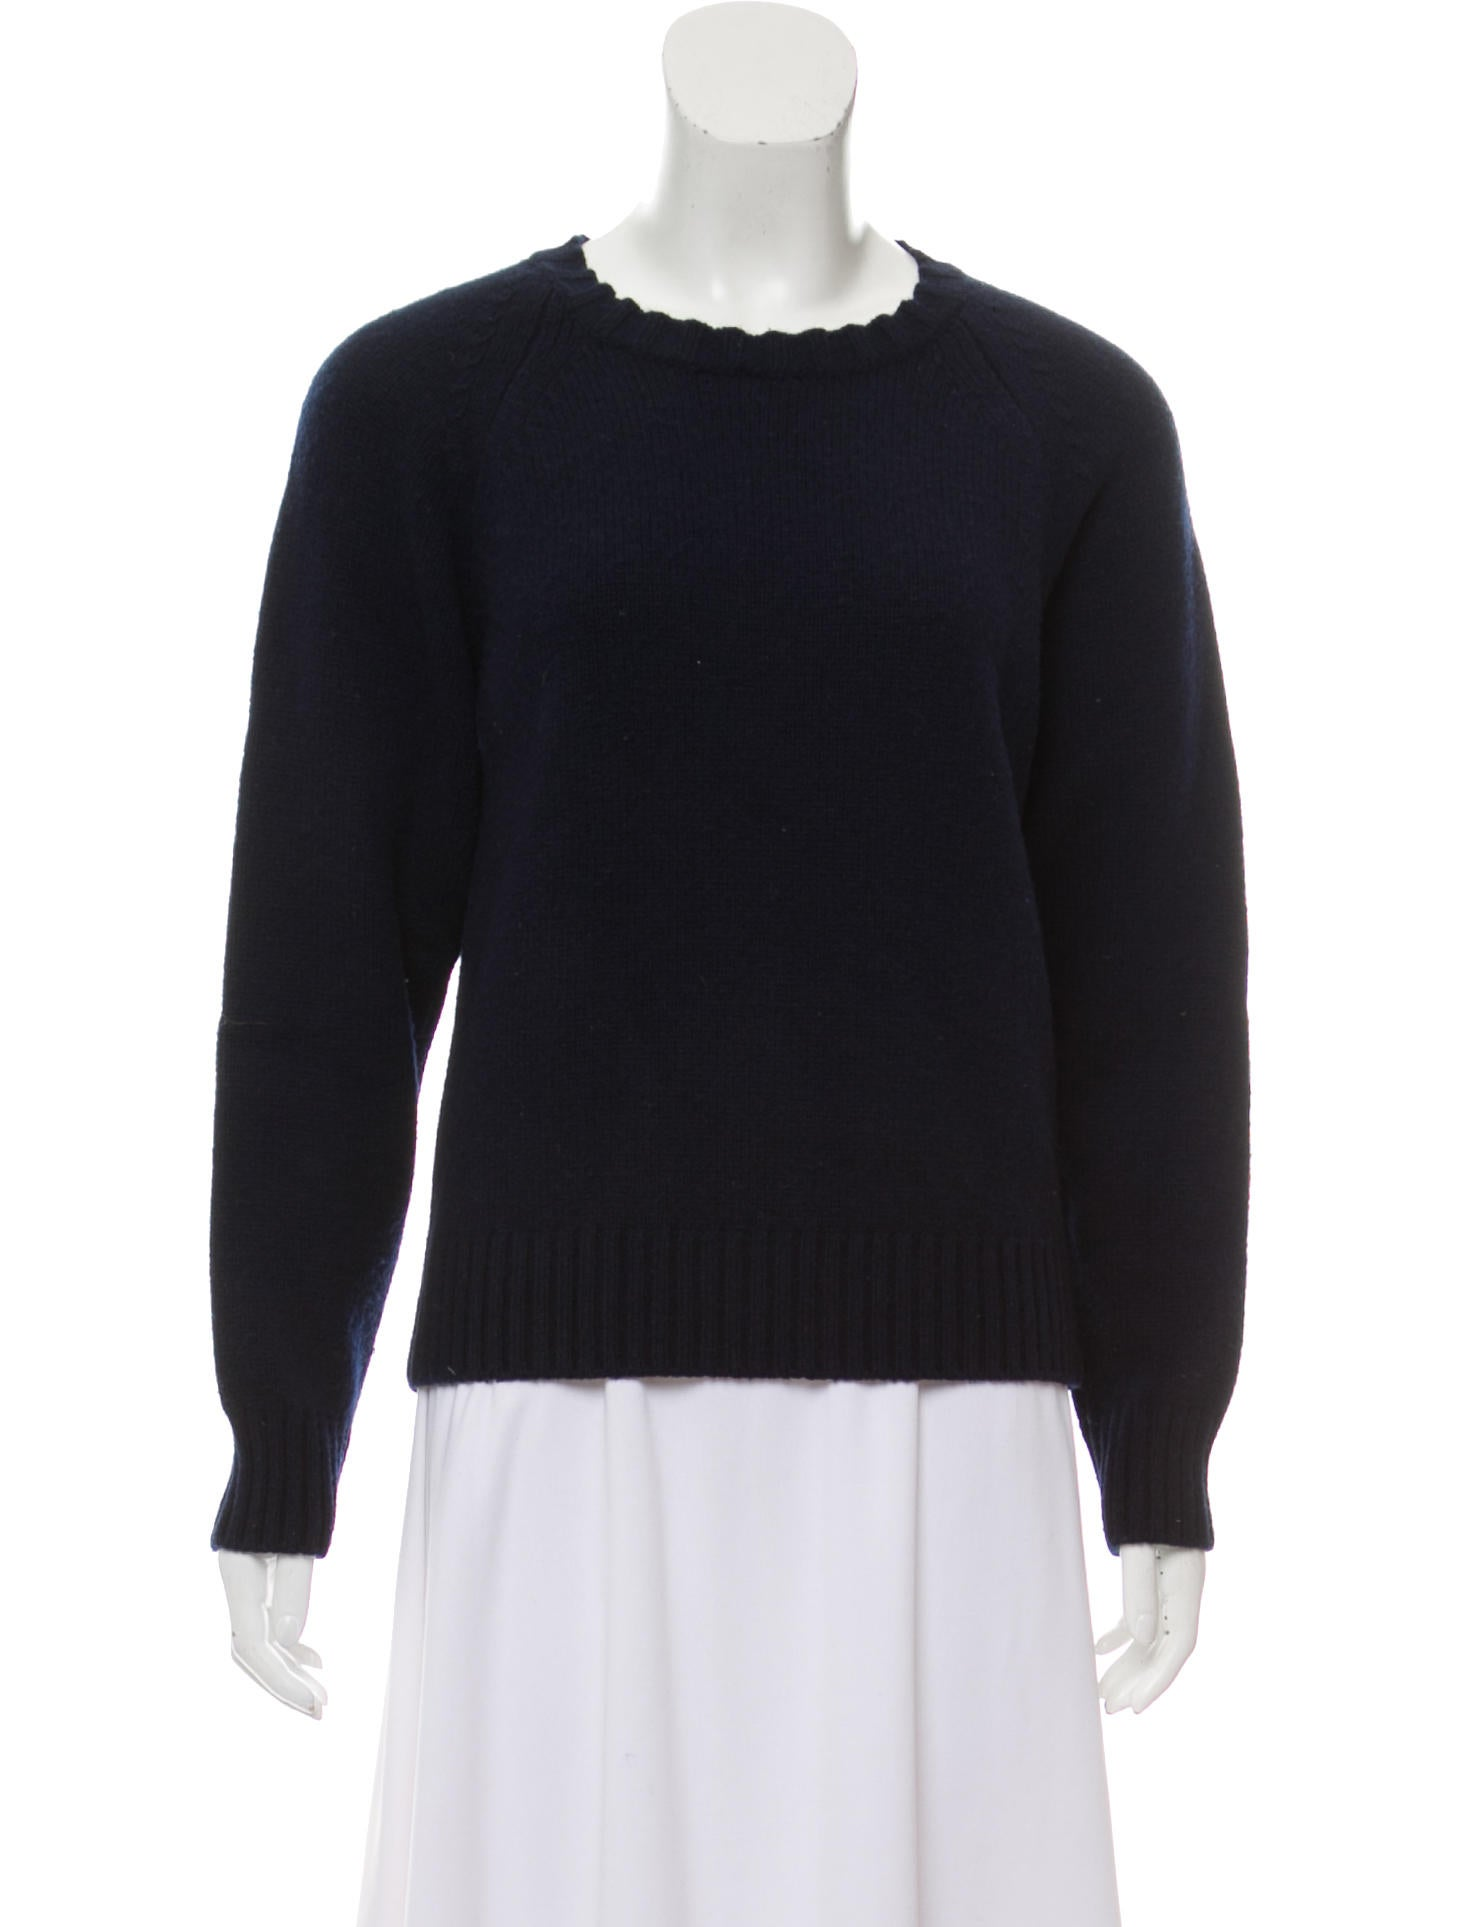 Wool Knit Sweater by A.P.C.